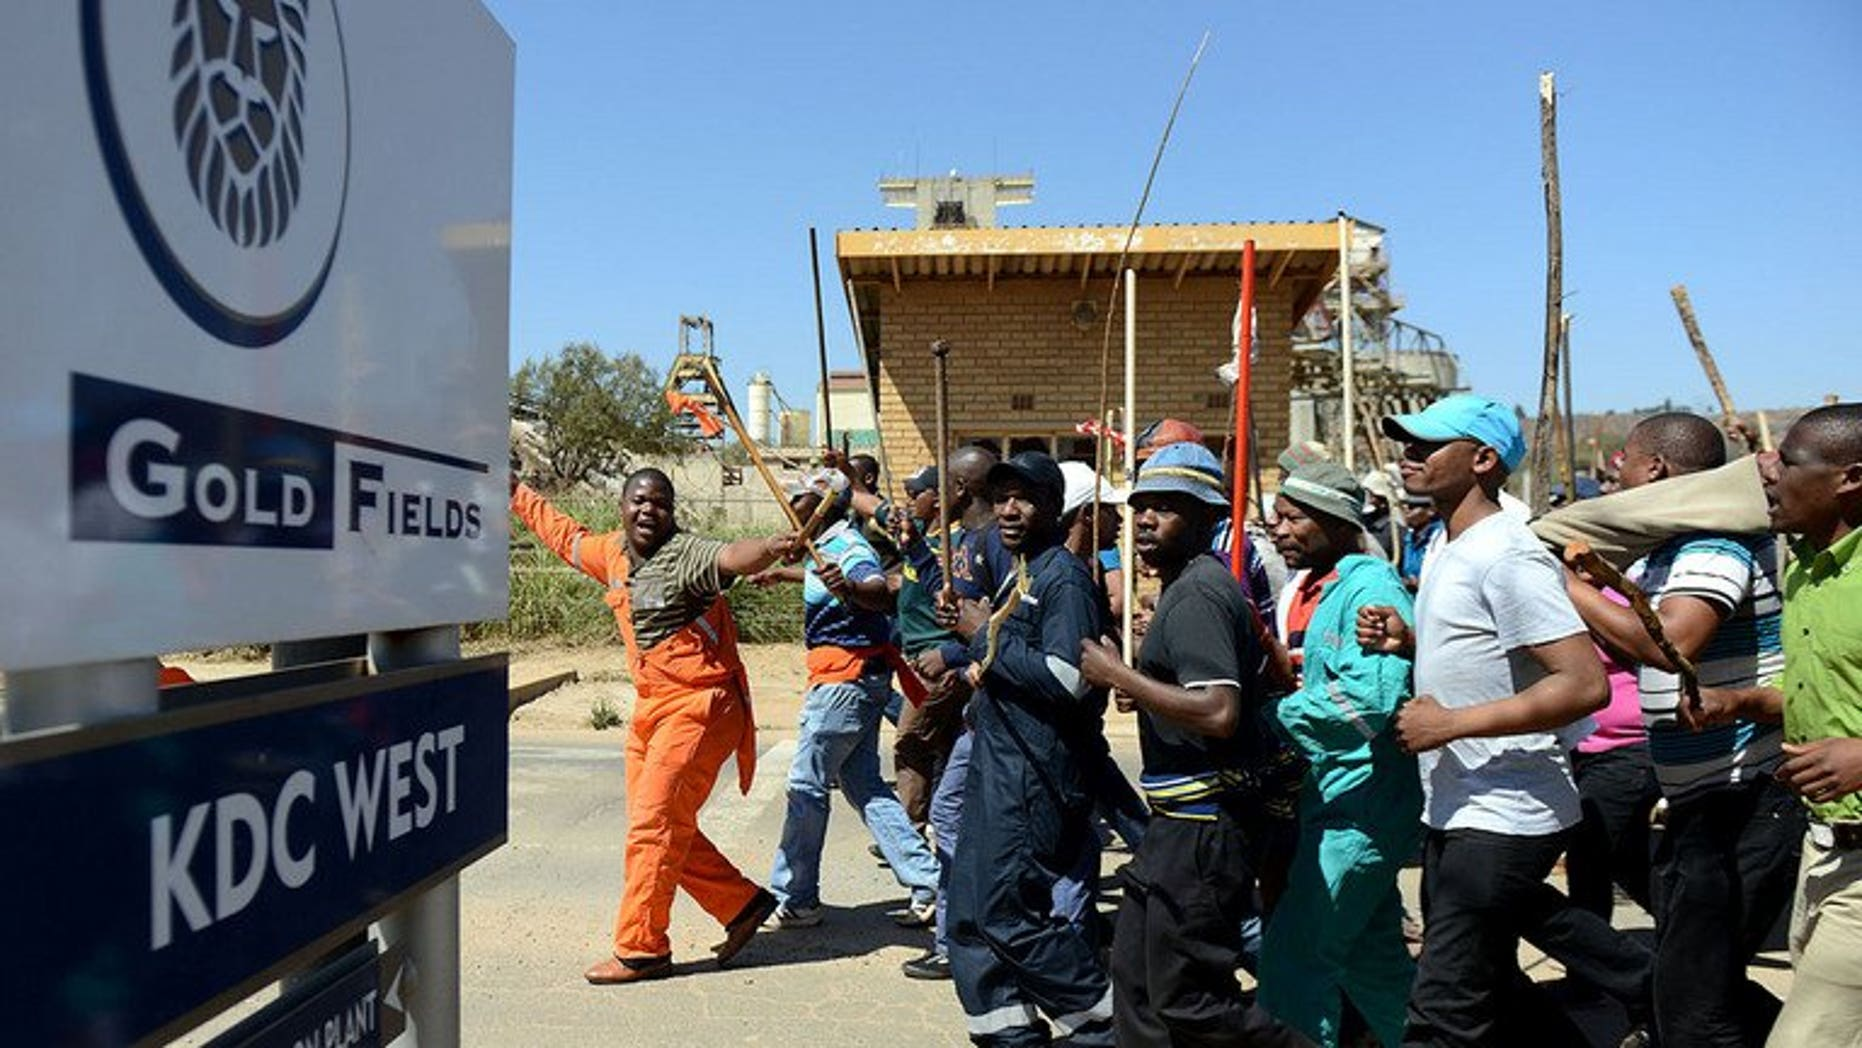 Striking Gold Fields mine workers march on September 11, 2012 in Carletonville, west of Johannesburg. Gold miners have vowed to take their silicosis lawsuit against London-listed Anglo American to South Africa's courts, after a British court refused to hear their case.